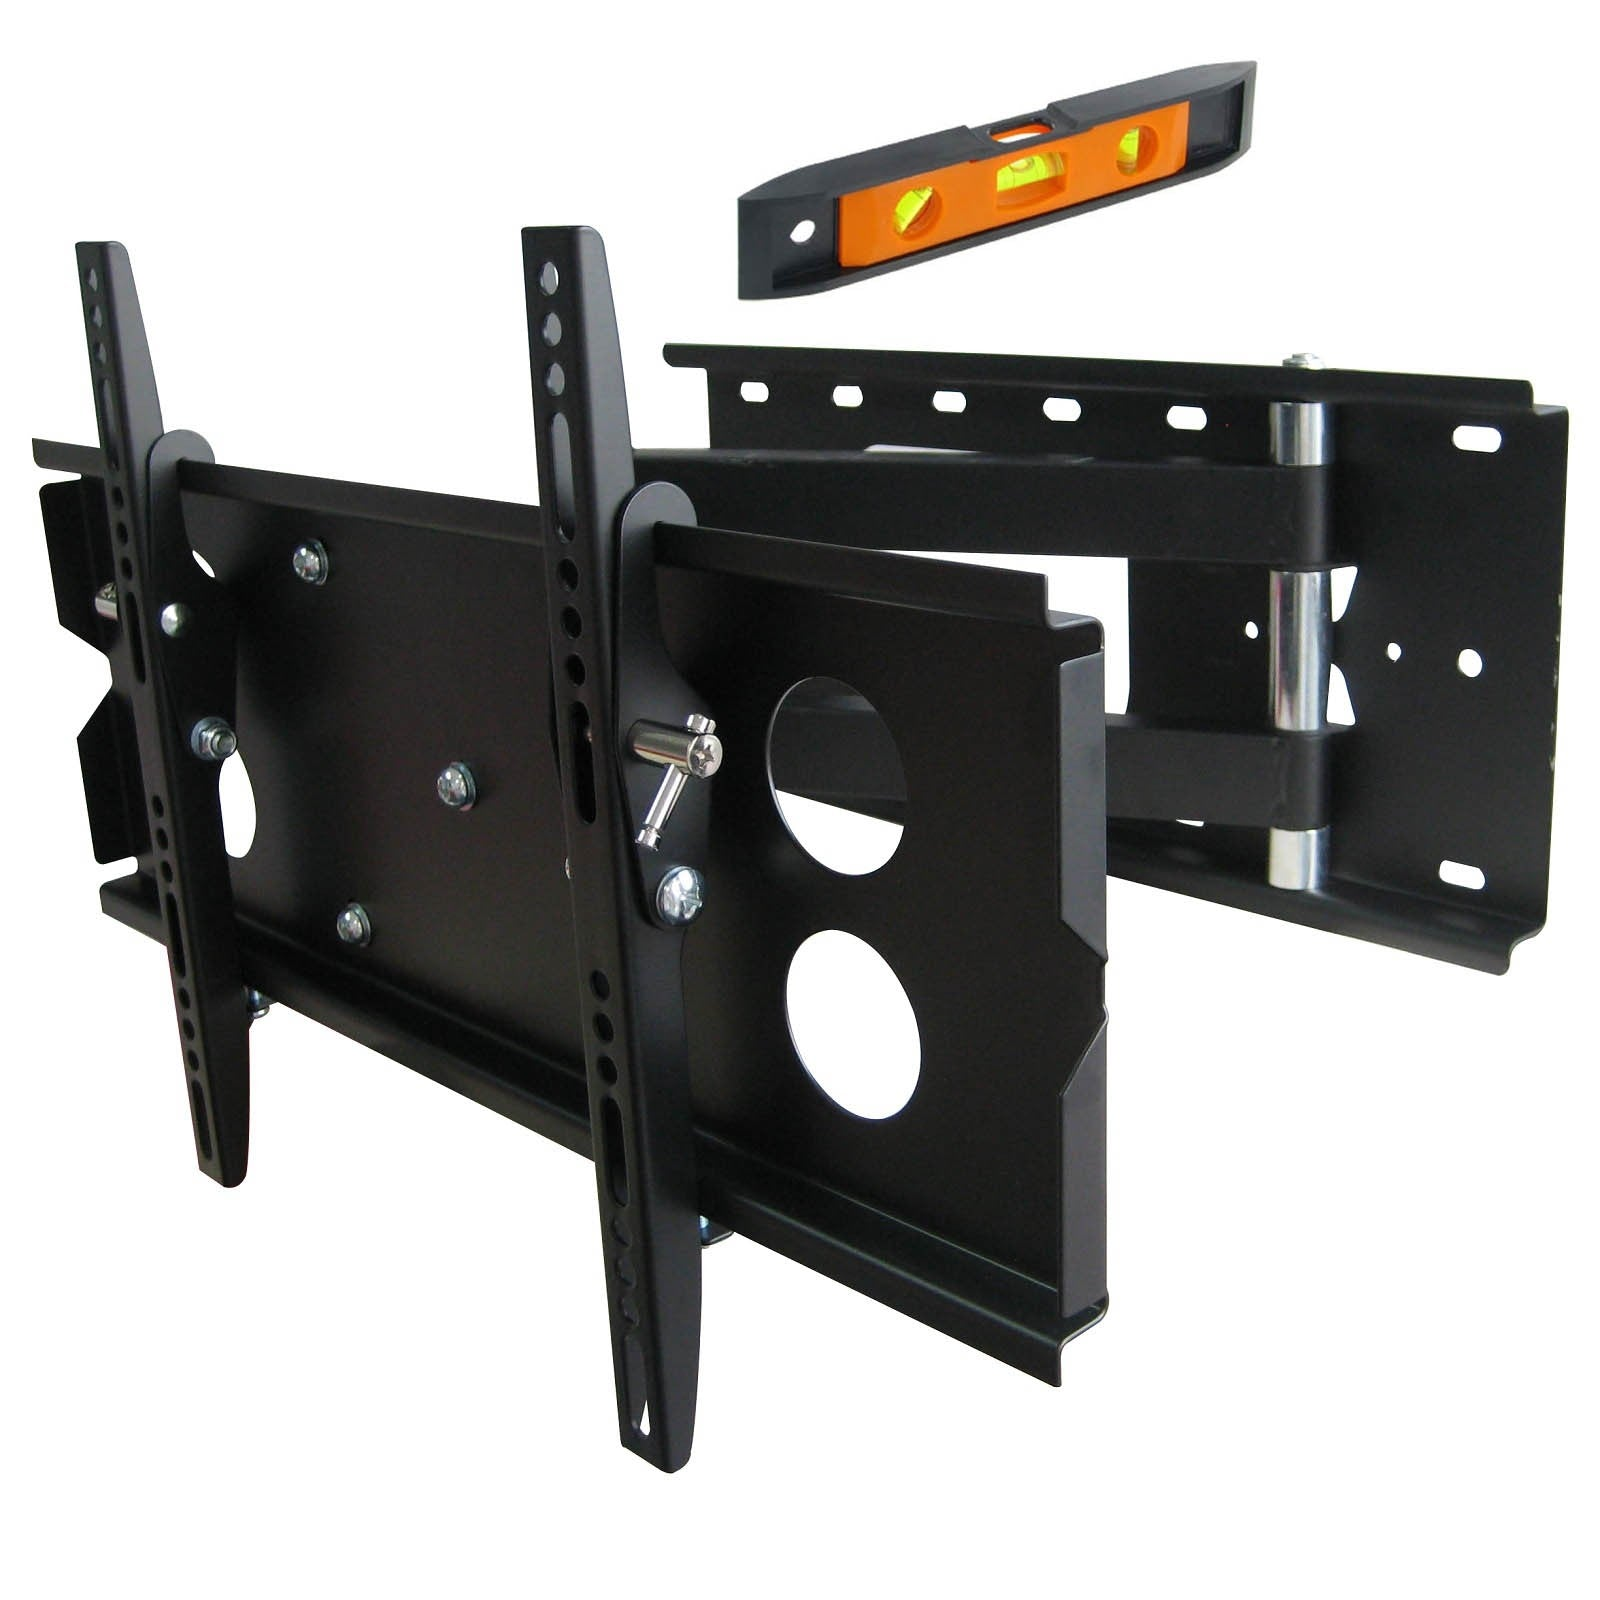 "23-37"" inch LED Plasma LCD TV Tilt Swivel Corner Wall Mount VESA Bracket PLB126S.bl - Straight Forward AV and IT"